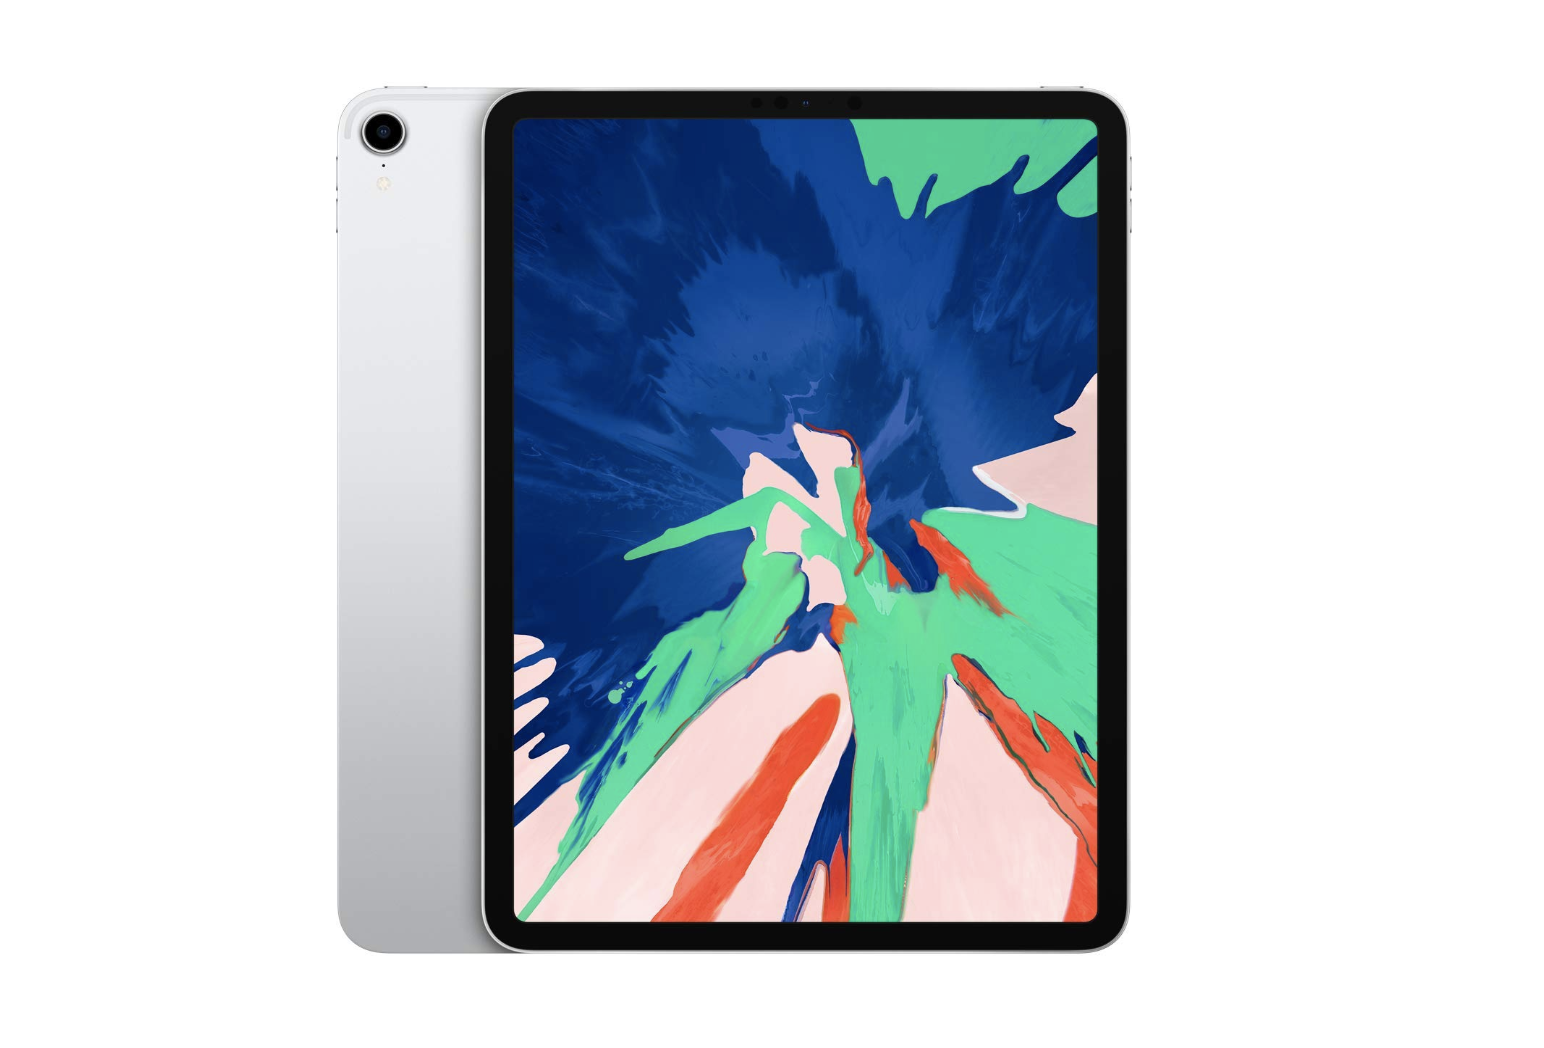 Apple iPad Pro (11-inch, Wi-Fi, 256GB) - (Latest Model)